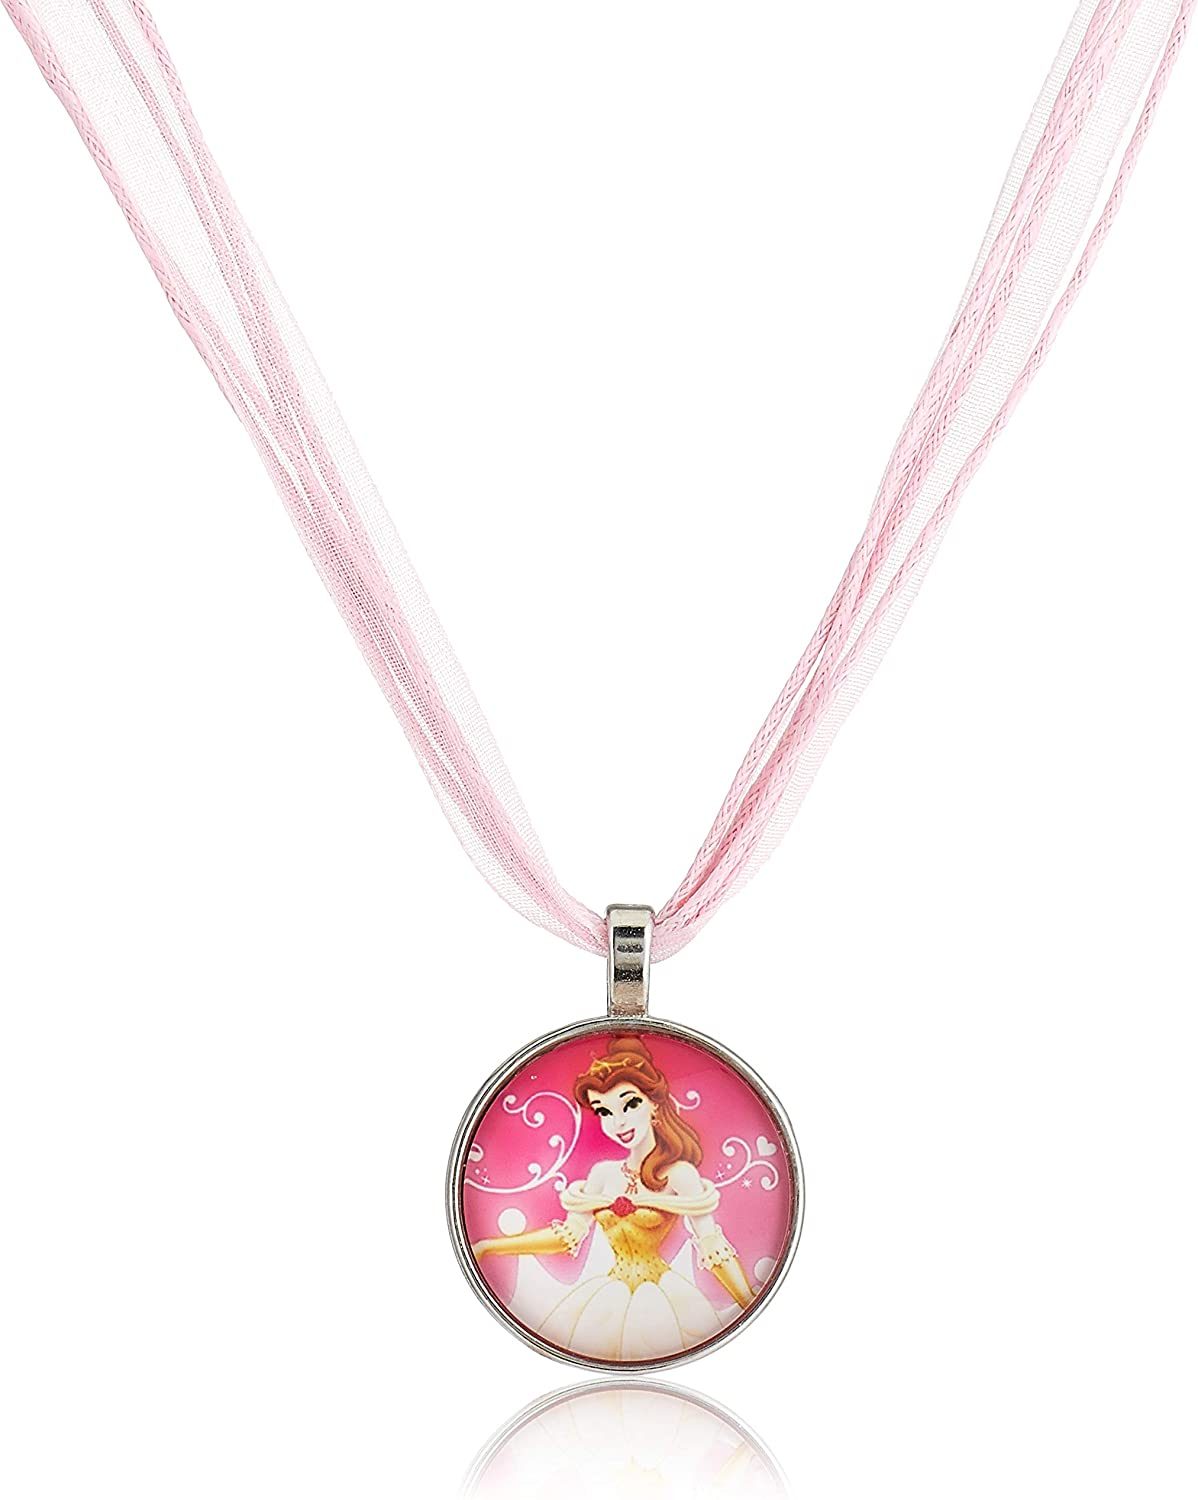 Princess Bella Featured Pendant with Organza Cord Necklace - Kids Jewelry For Girls- Princess Kids Fashion Costume Jewelry for Girls: Cyber Monday Jewelry Deal, Black Friday Jewelry Deals